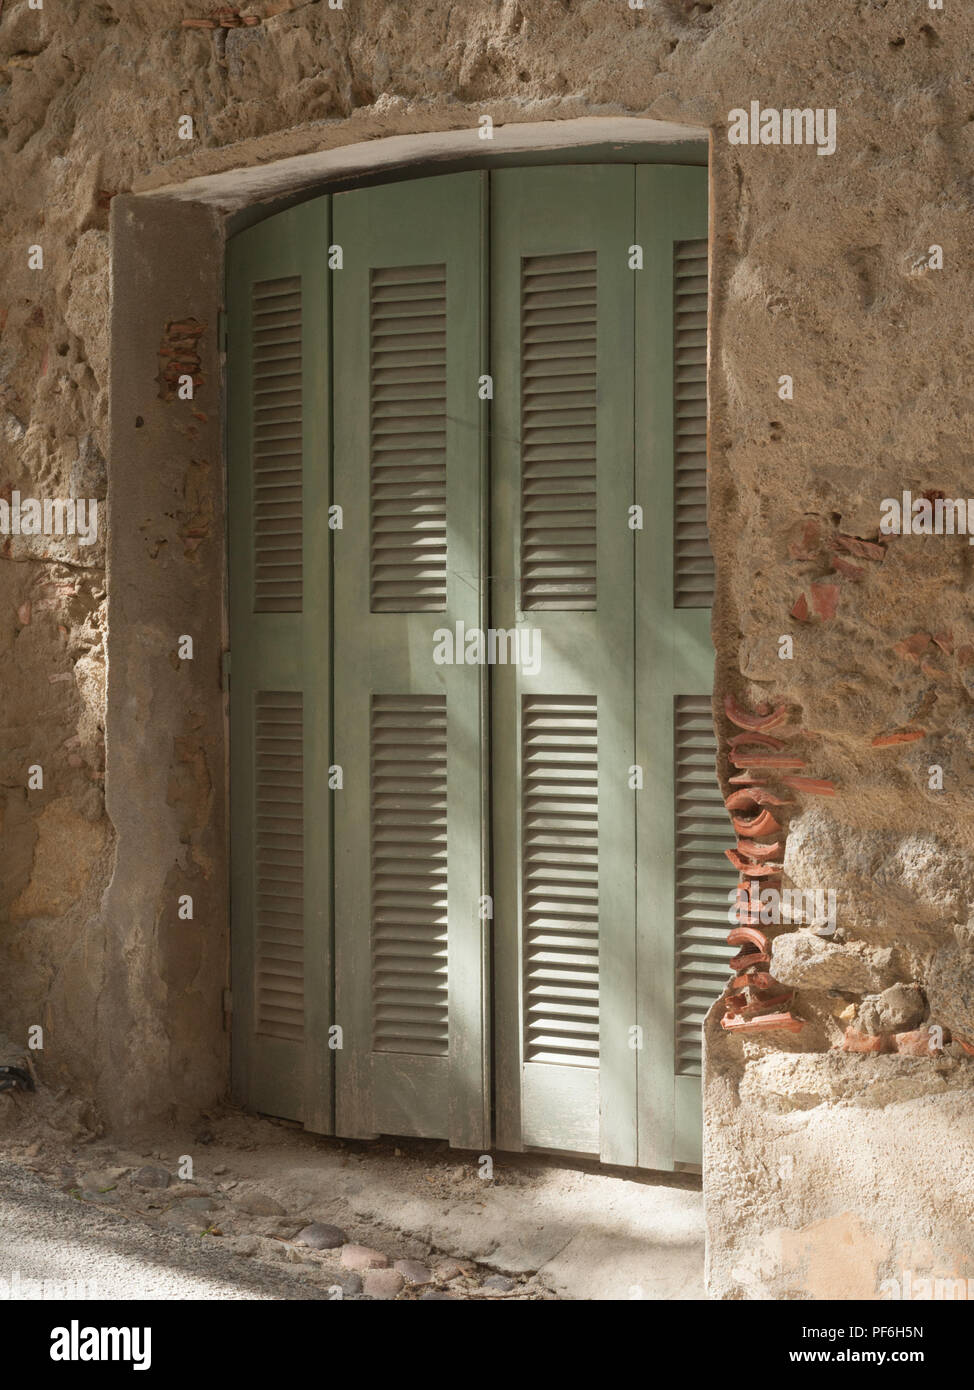 A recessed doorway in the old town, Calvi, The Balagne, Corsica, France, Europe - Stock Image